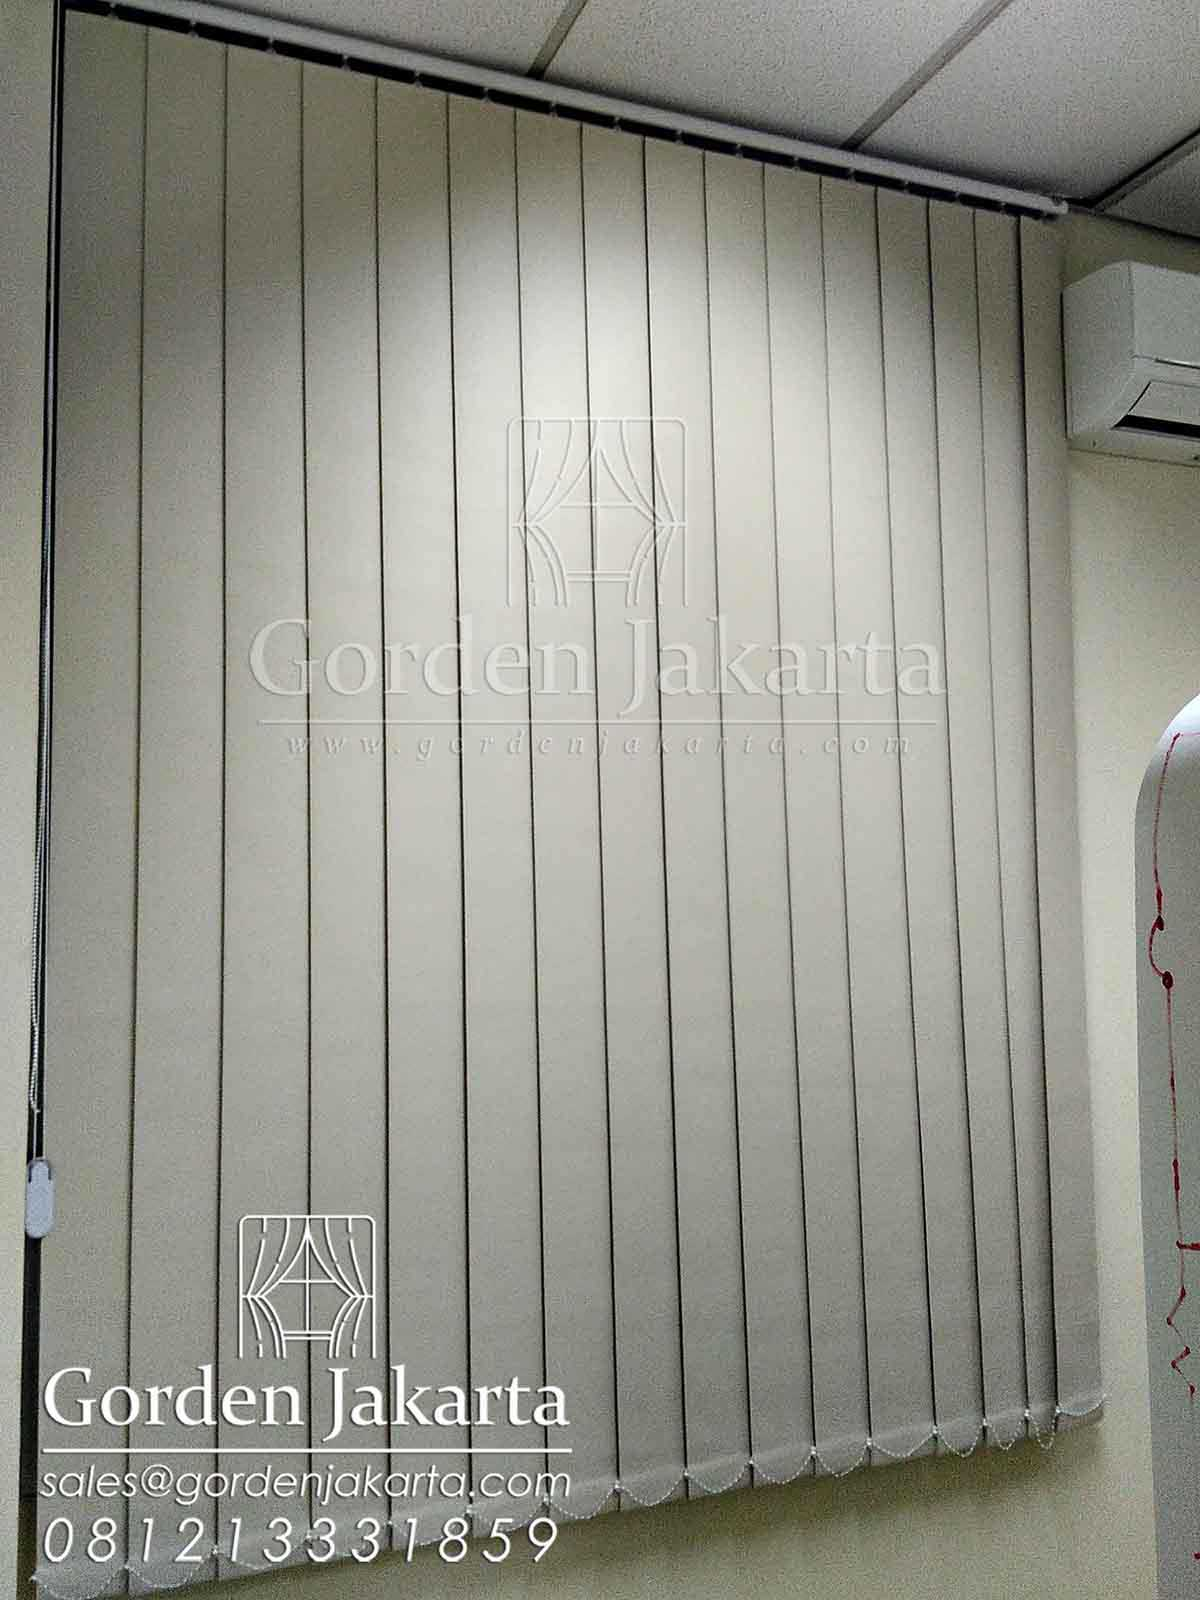 harga-gordyn-vertikal-blind-sharp-point